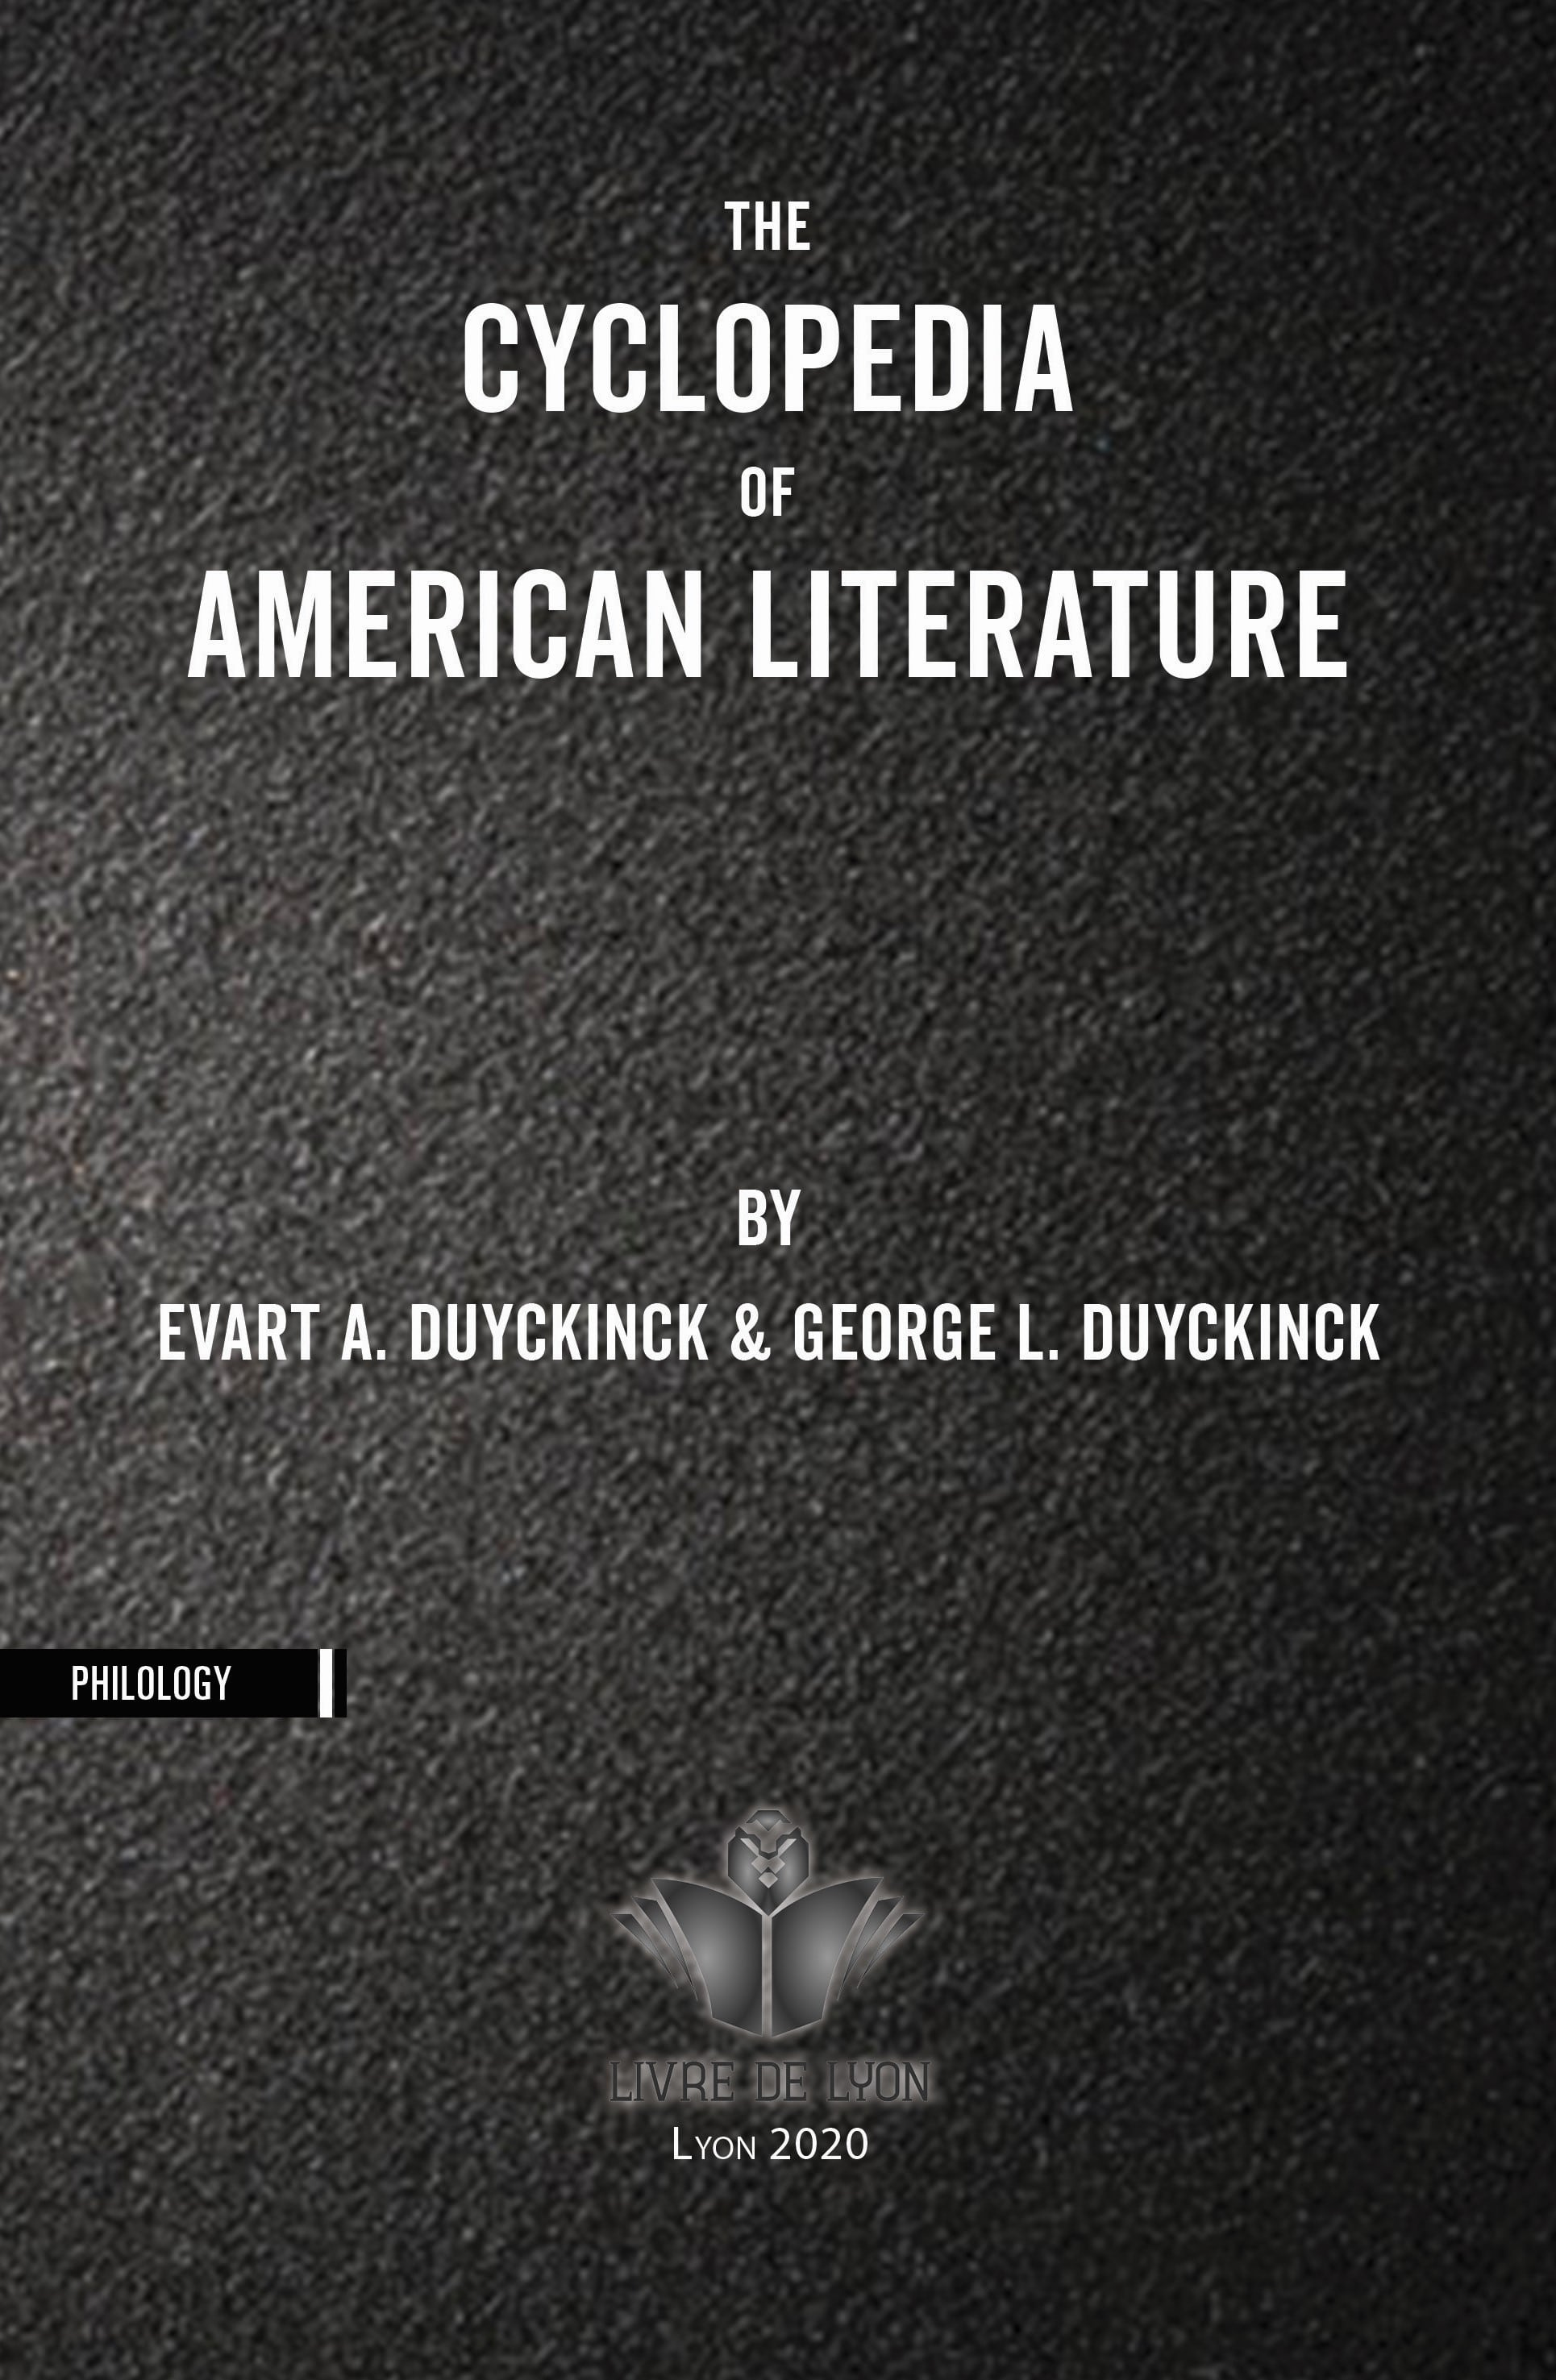 The Cyclopedia of American Literature